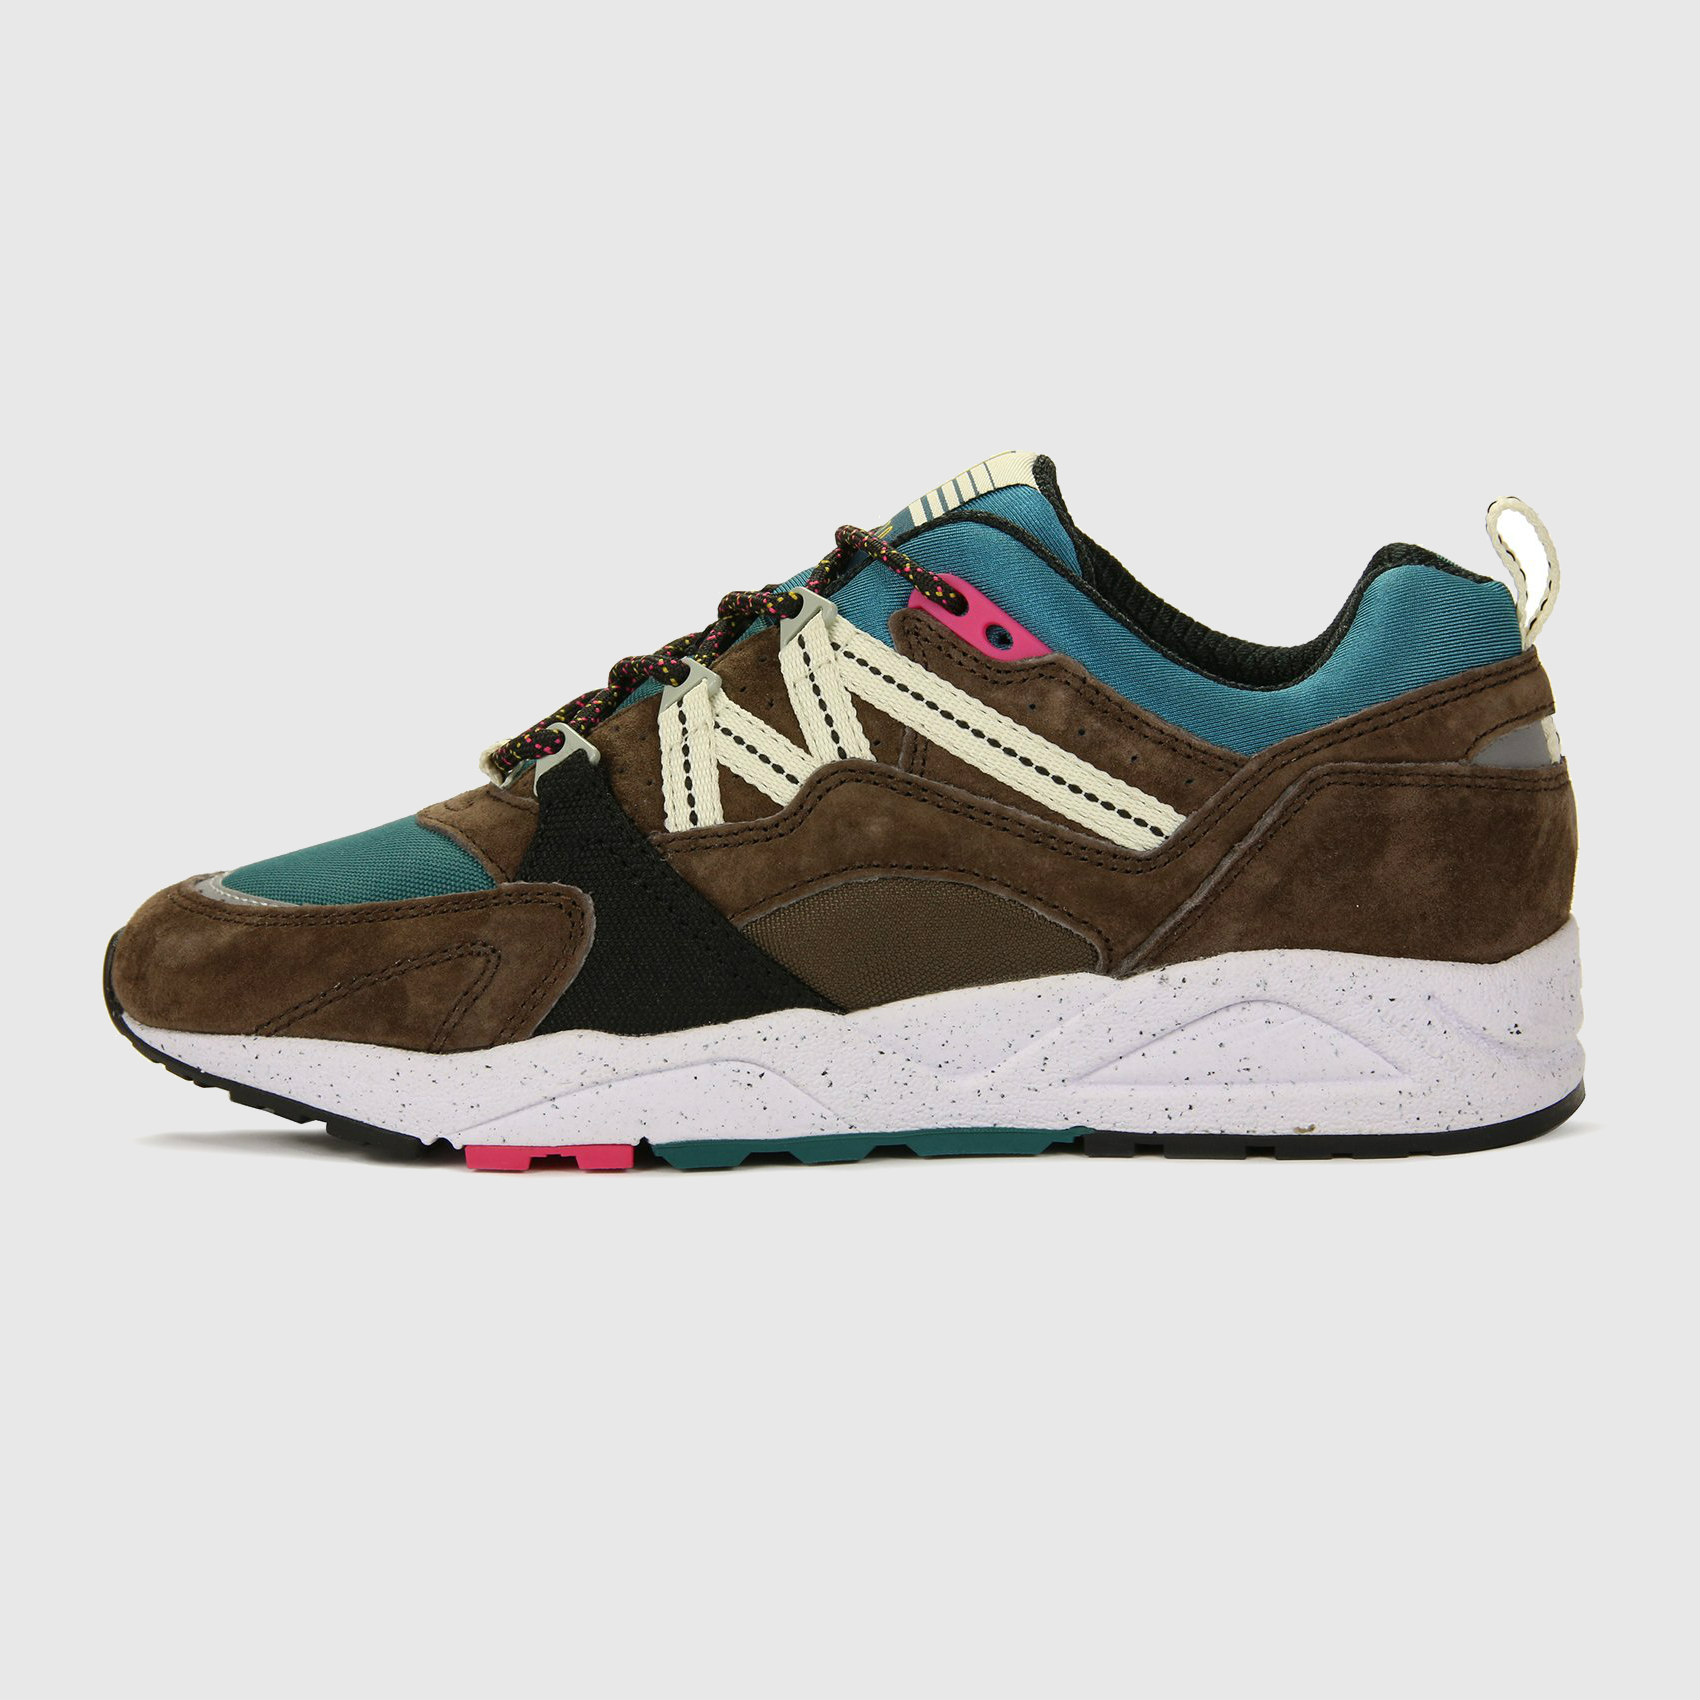 Karhu Fusion 2.0 Winter - Bracken / Shaded Spruce